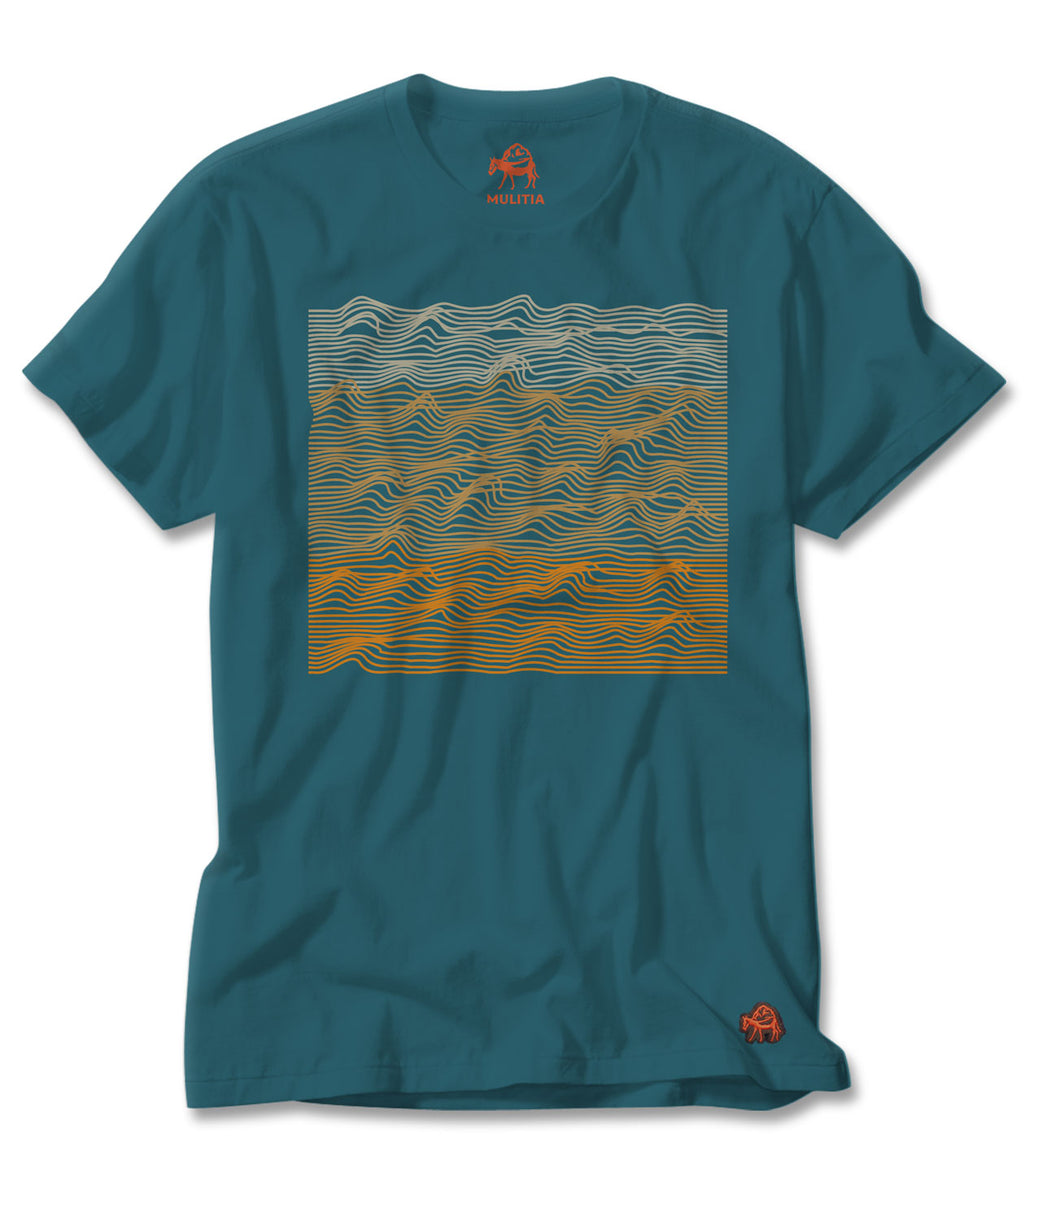 Topograph Tee in Teal